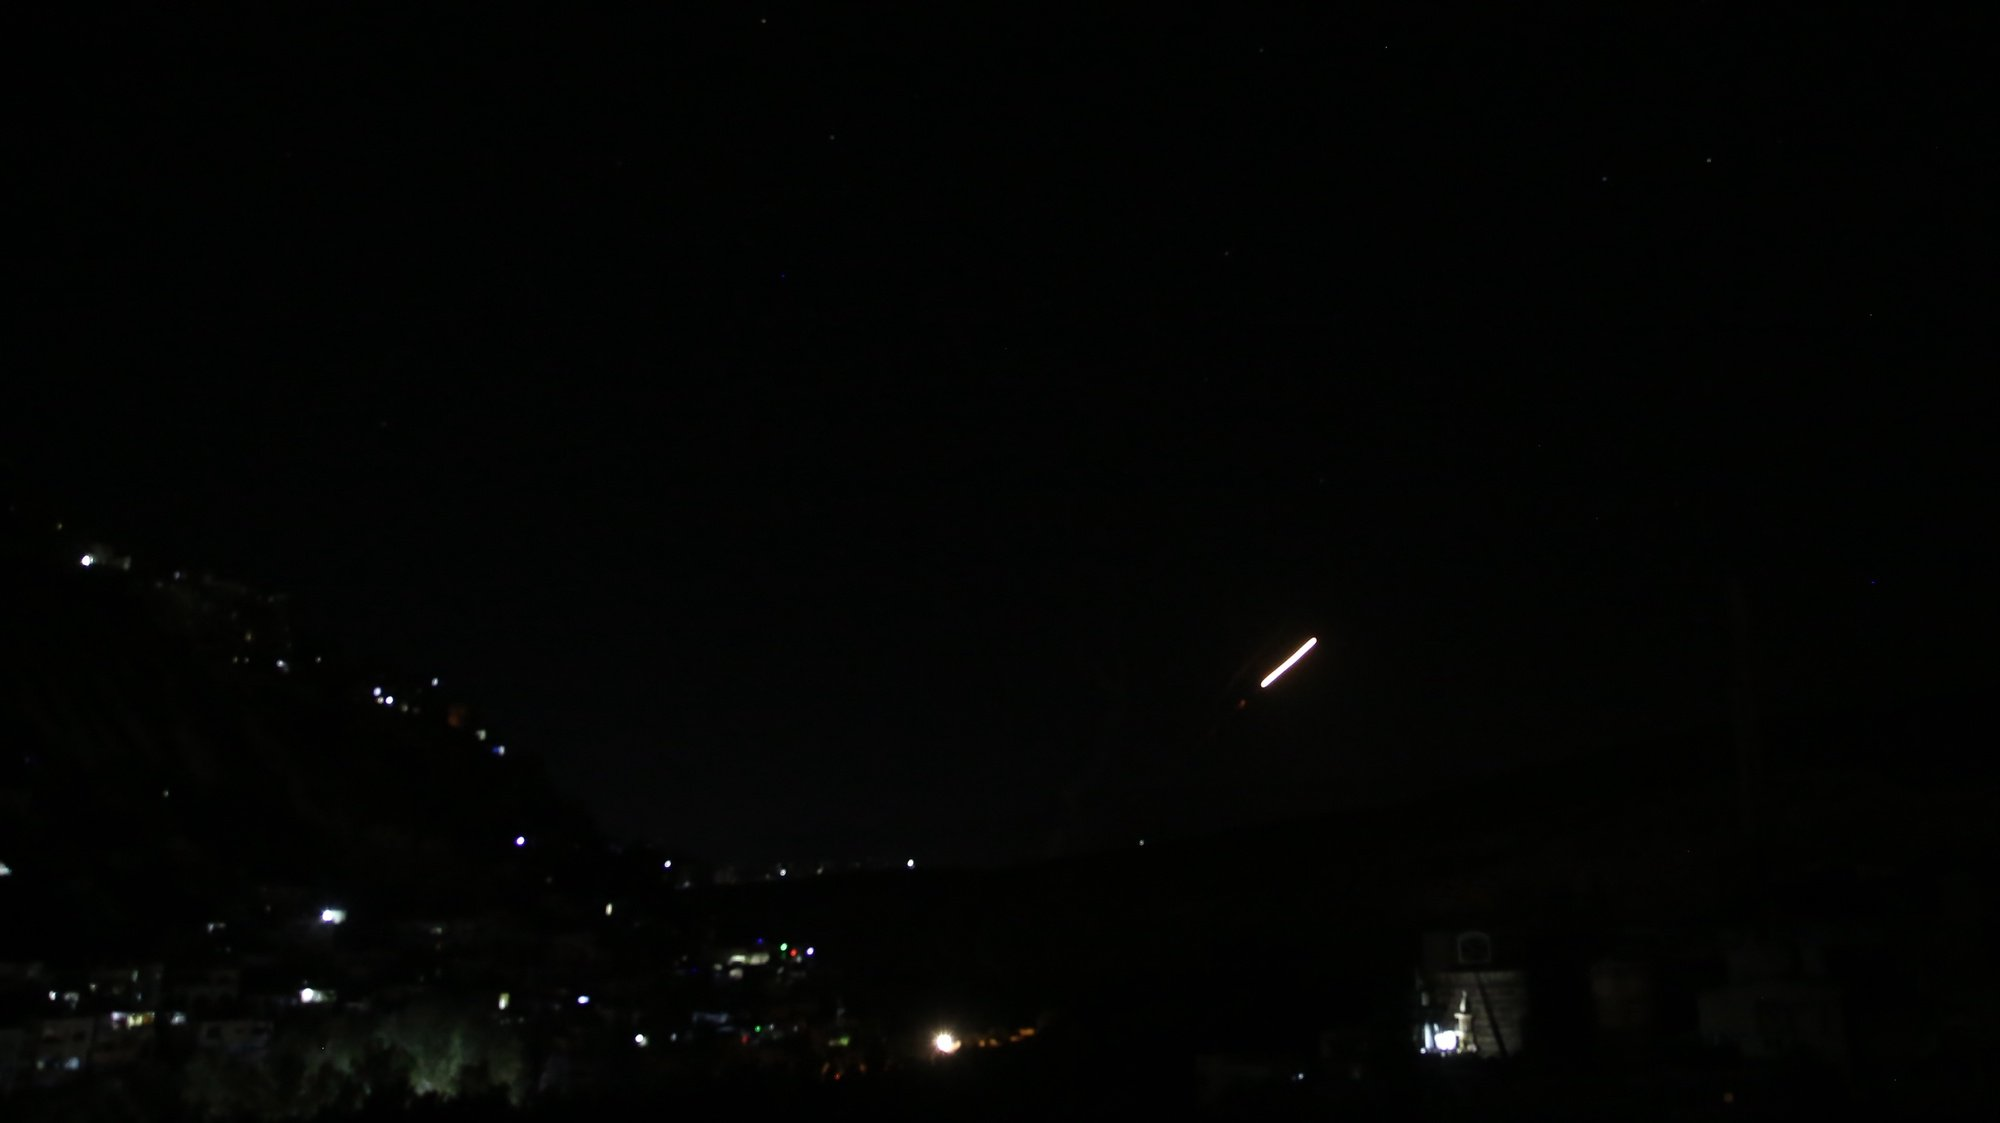 epa09444317 Syrian air defenses intercept projectiles allegedly launched from Israel, in the countryside near Damascus, Syria, 02 September 2021. According to SANA, the air defences downed a number of missiles in the skies above Damascus.  EPA/YOUSSEF BADAWI